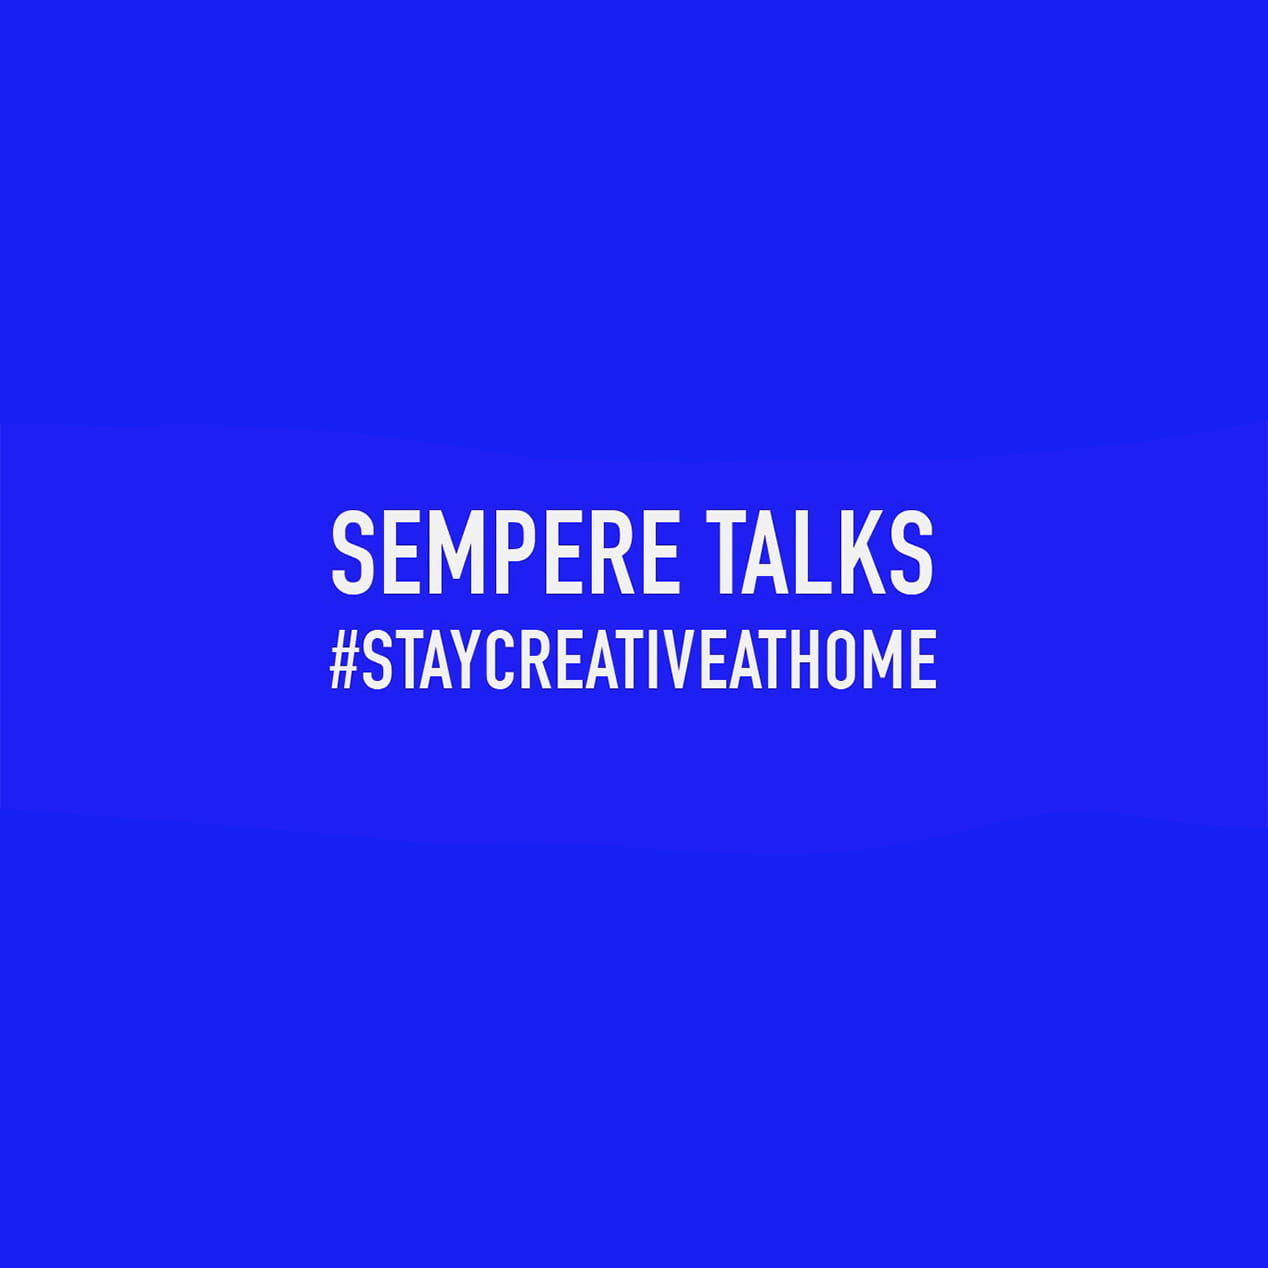 SEMPERE TALKS